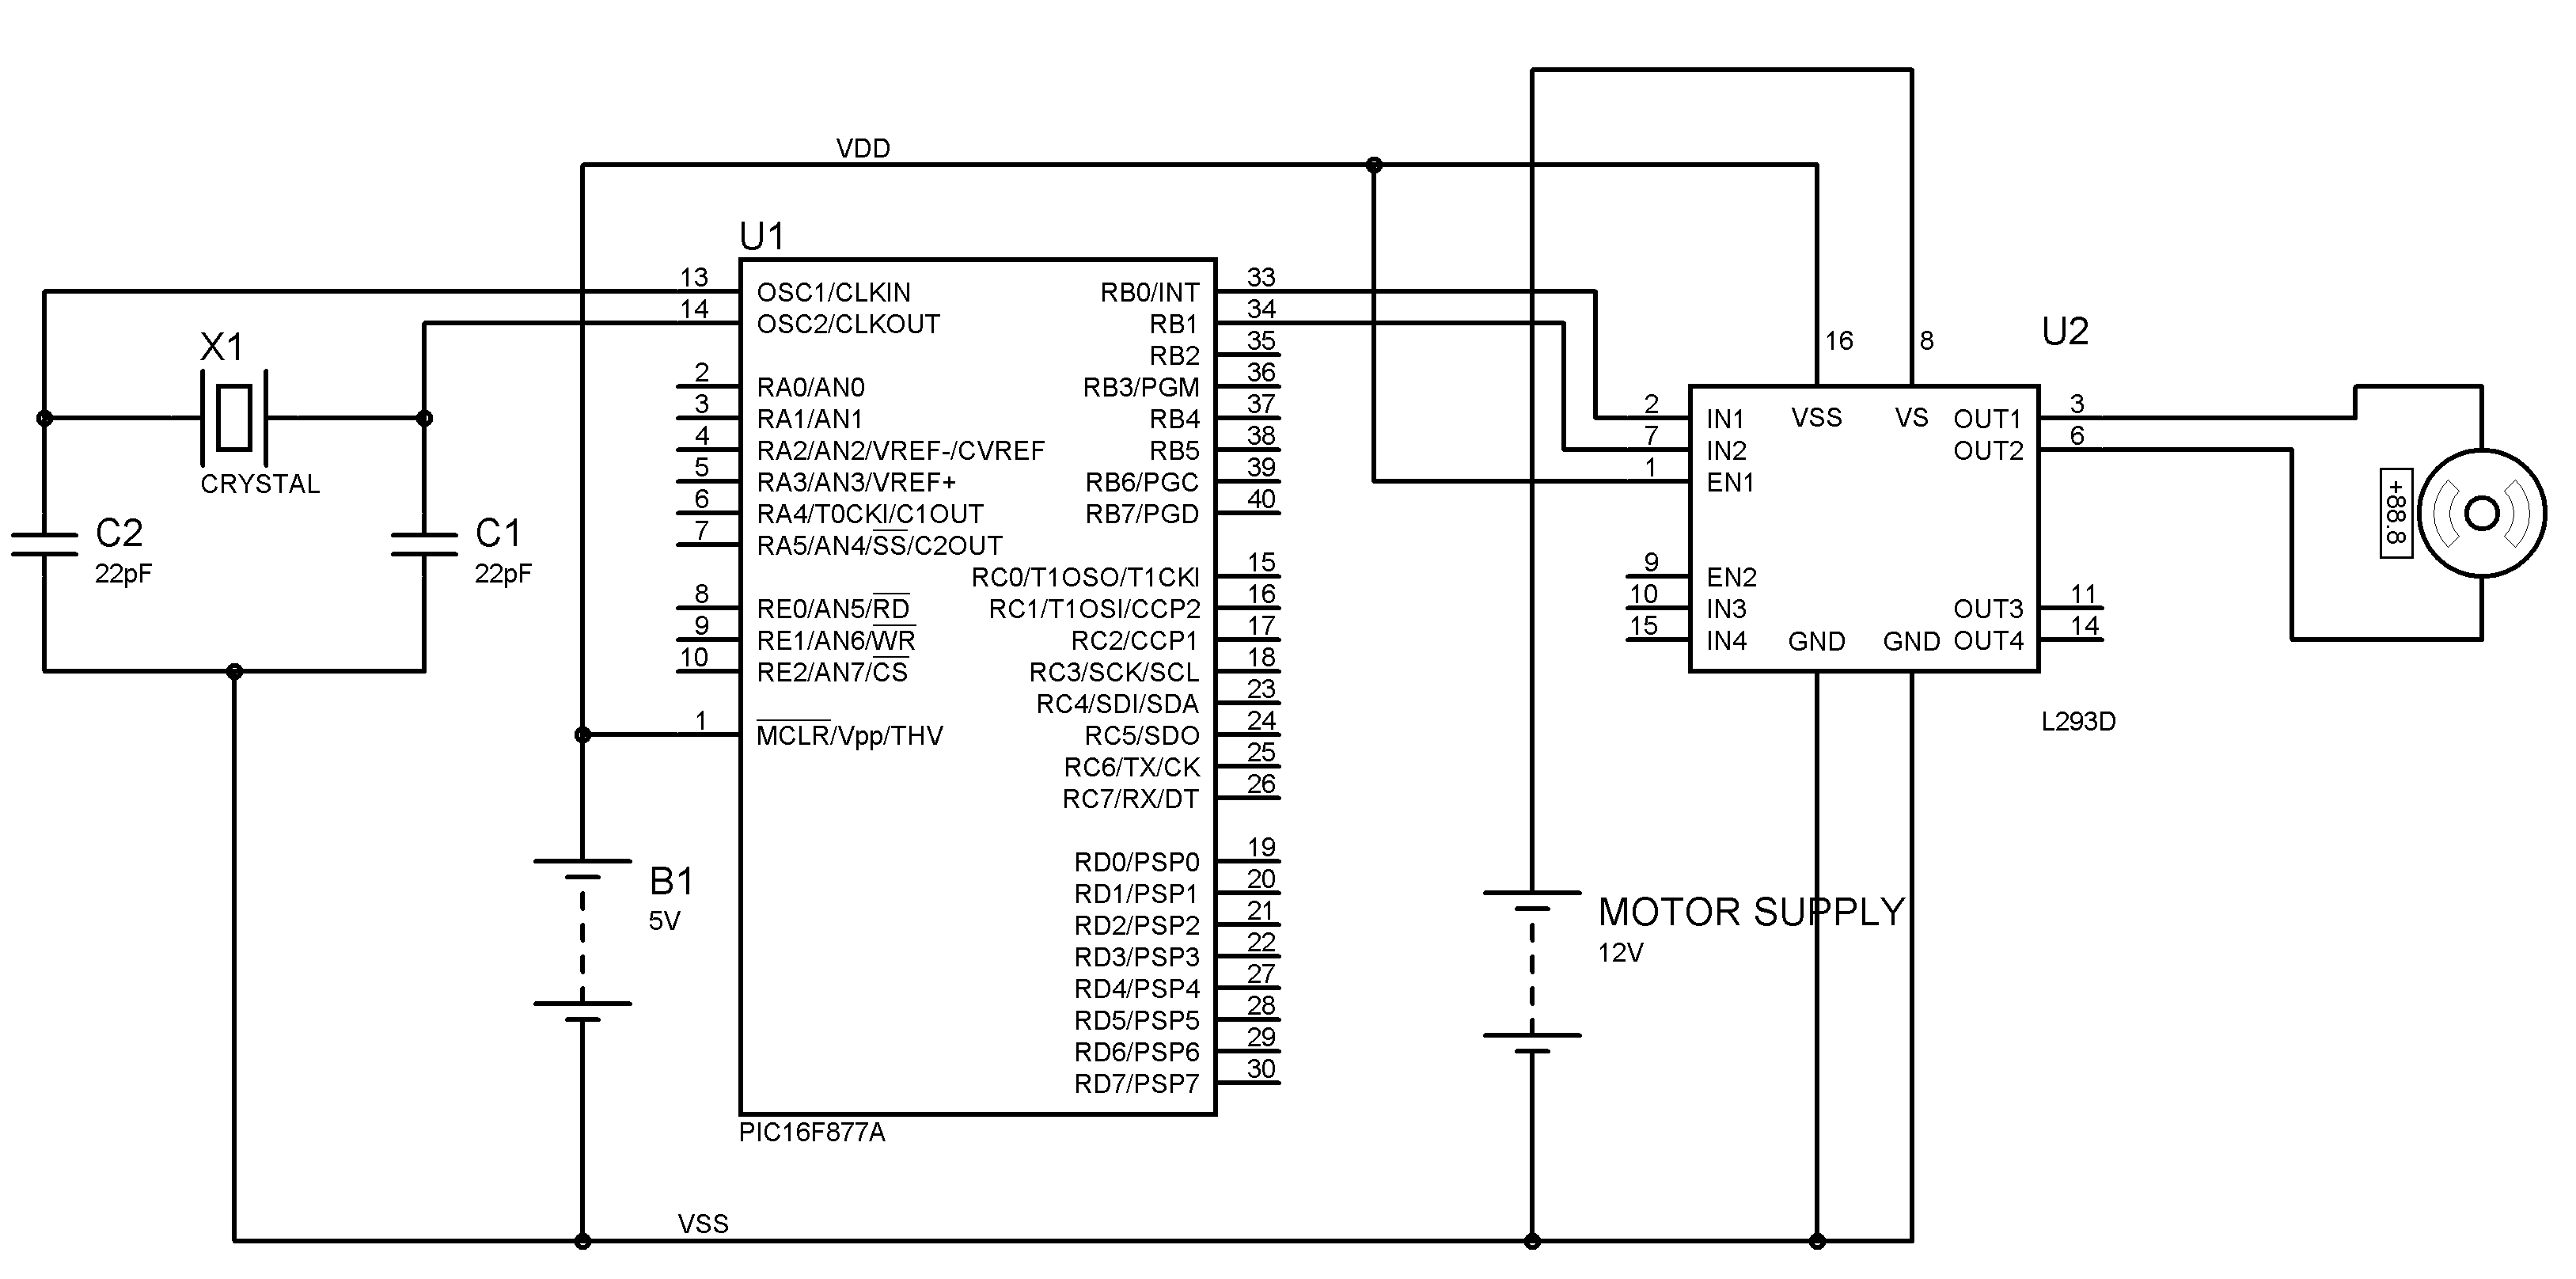 Mikroc Code For Controlling Motor